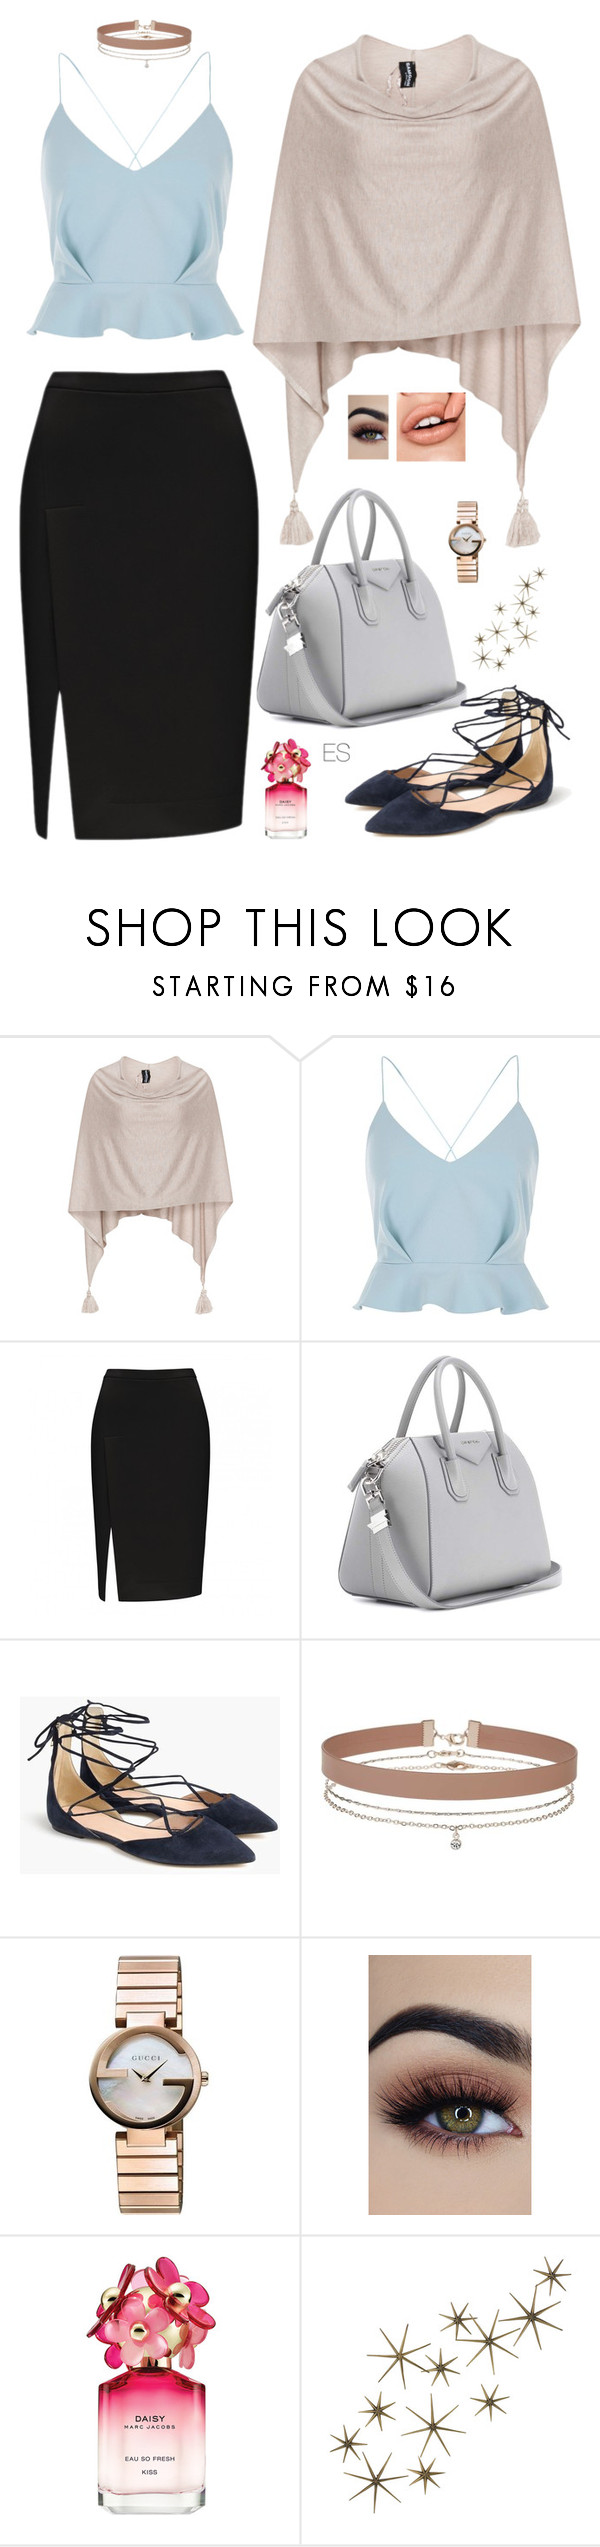 """Look 95"" by ellesungte ❤ liked on Polyvore featuring Samoon, River Island, Givenchy, J.Crew, Miss Selfridge, Gucci, Marc Jacobs and Global Views"